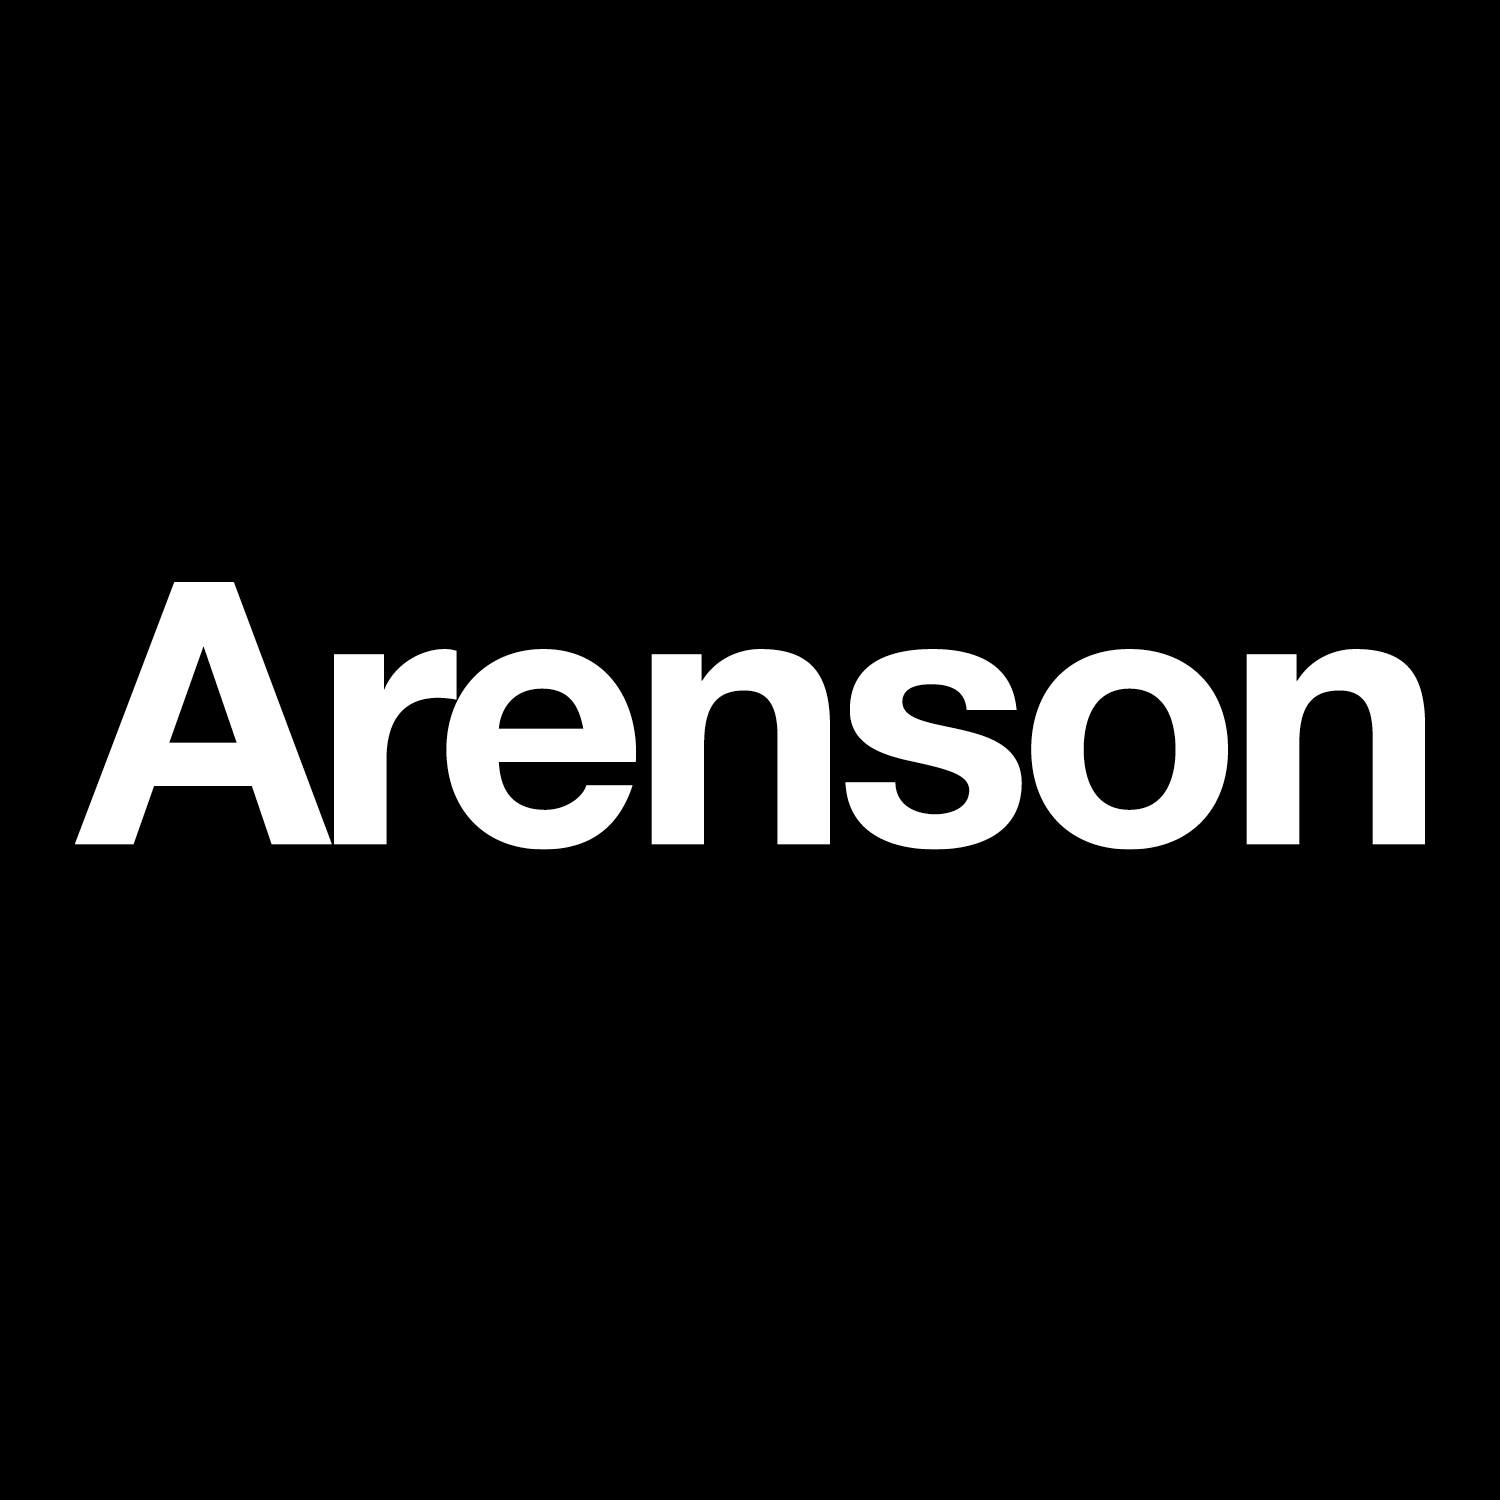 Arenson fice Furnishings fice furniture sales new and used